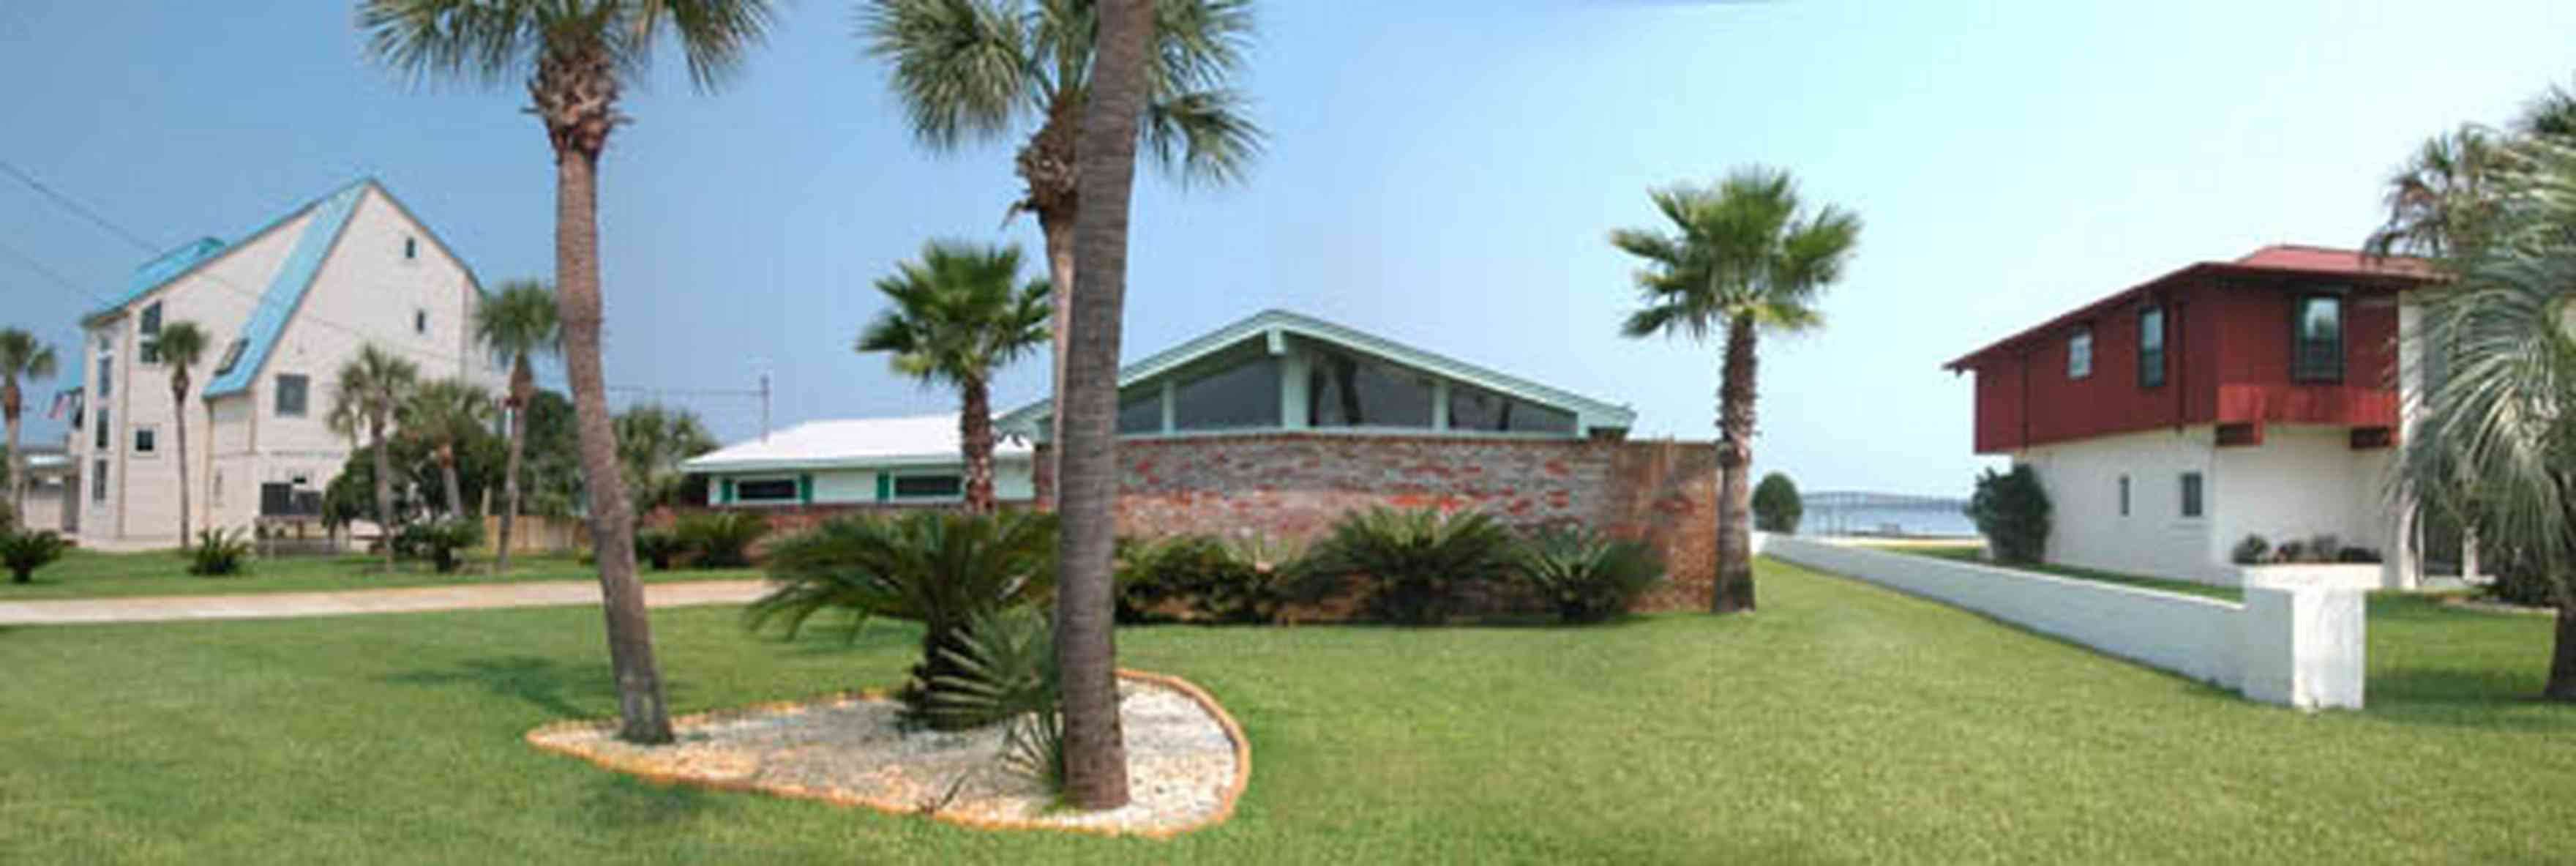 Pensacola-Beach:-231-Sabine-Drive_01.jpg:  palm trees, 1950's architecture, brick house, pensacola bay, soundside